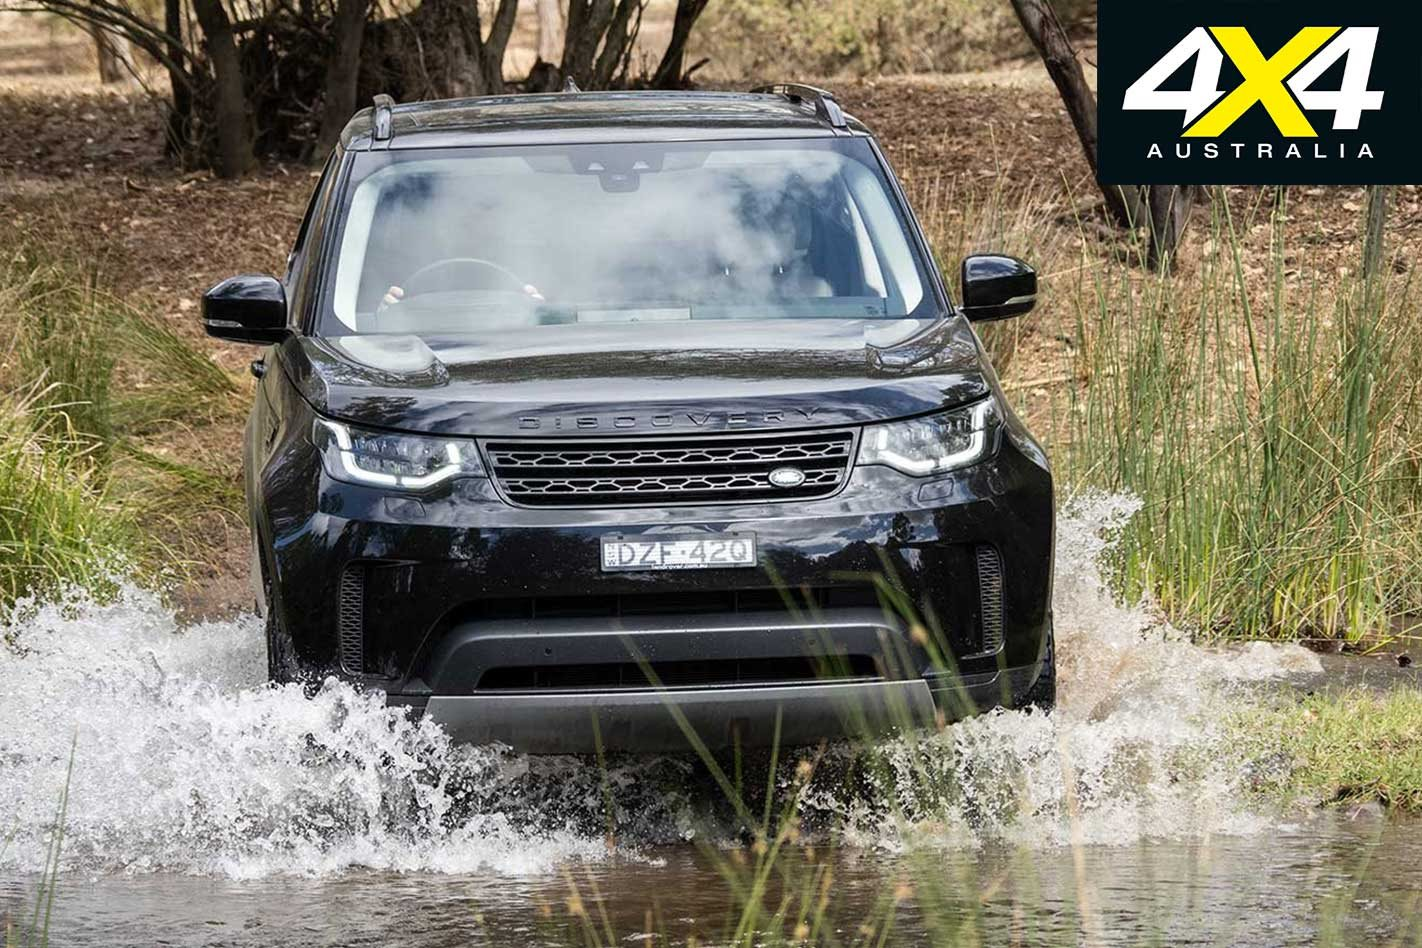 2019 Land Rover Discovery SD4 long-term review